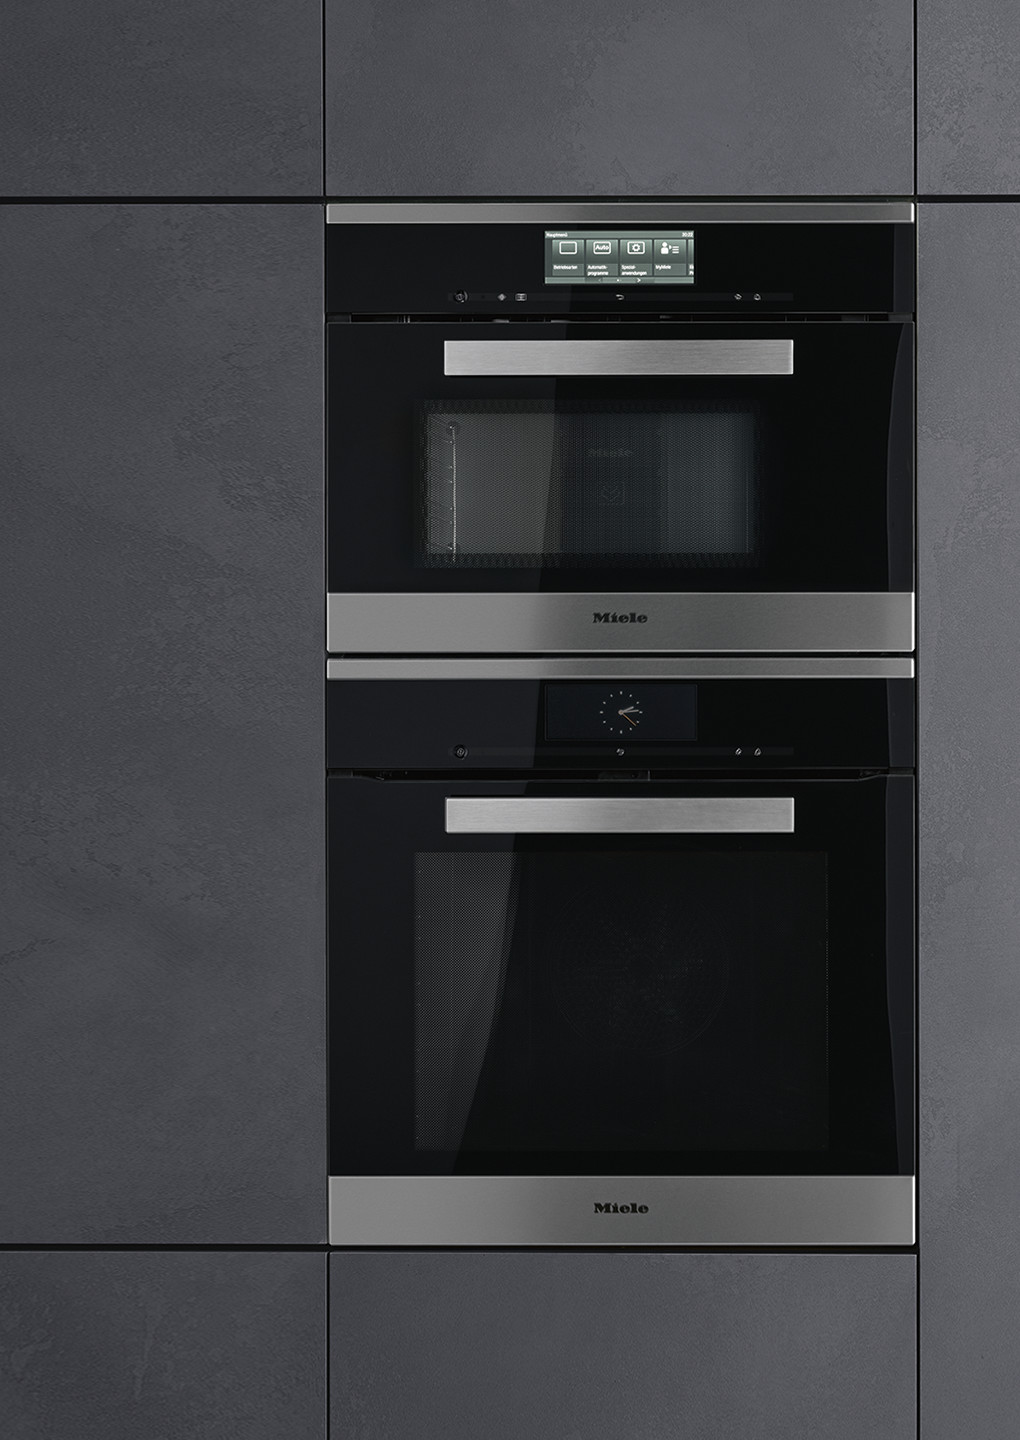 Miele Dgm Steam Oven With Microwave 187 Miele